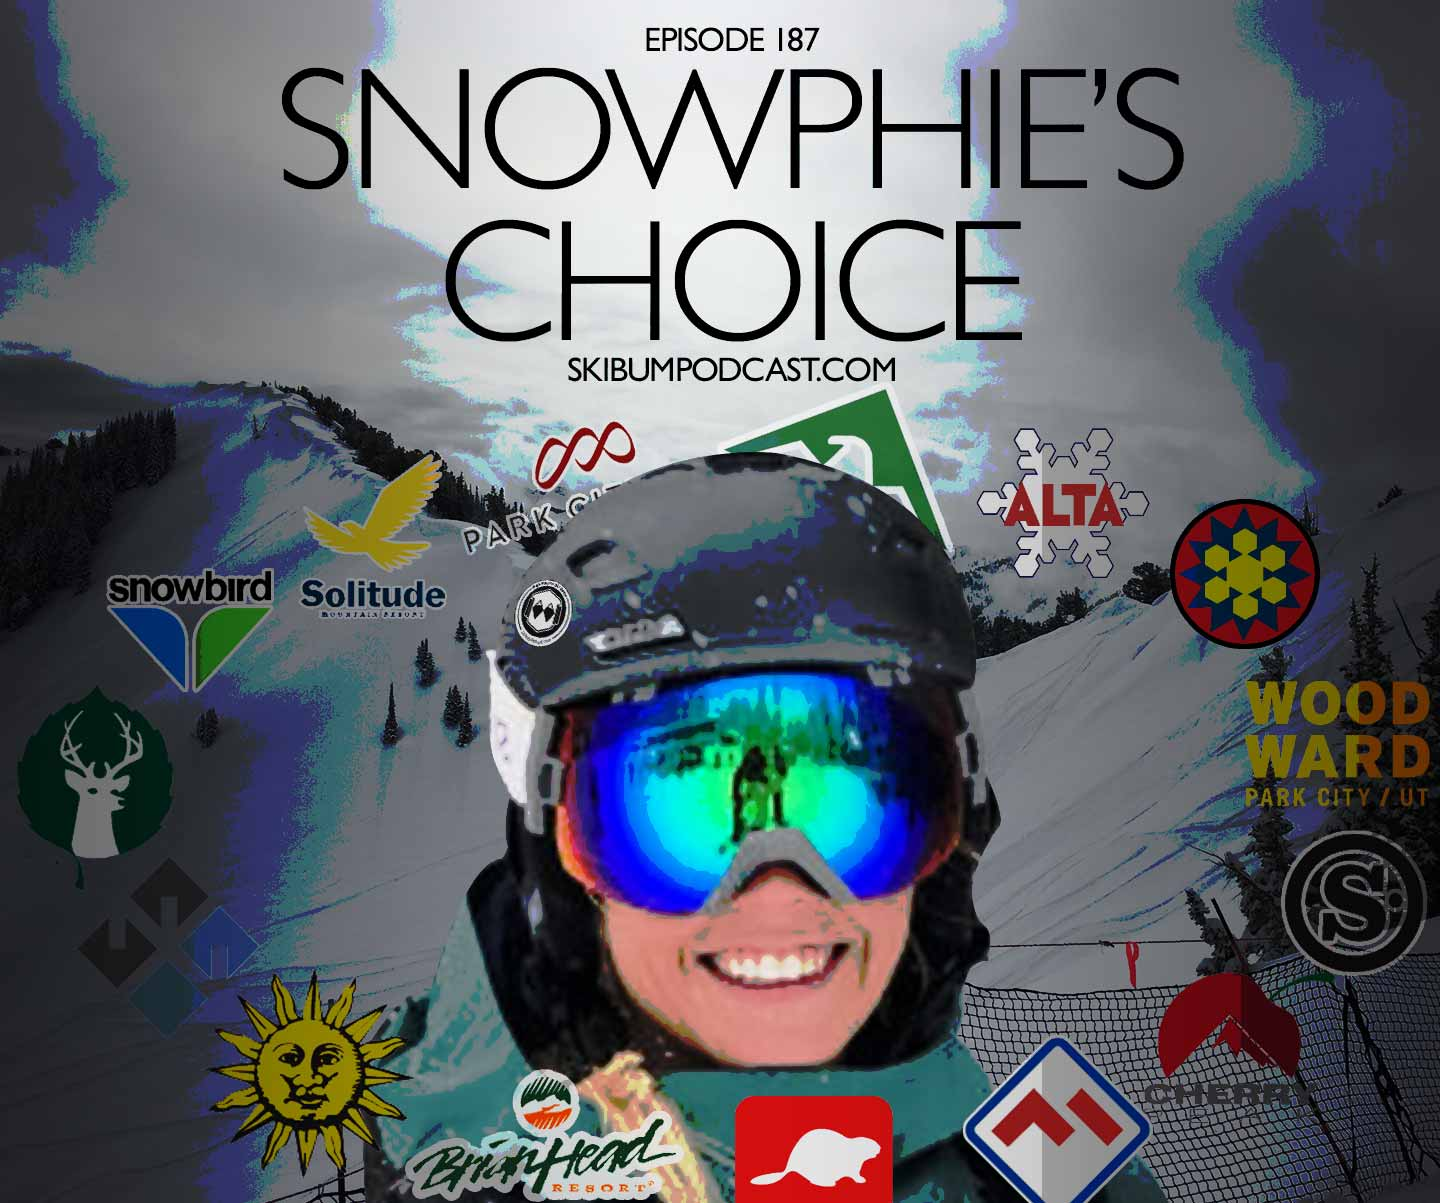 Podcast #187 – Snowphie's Choice